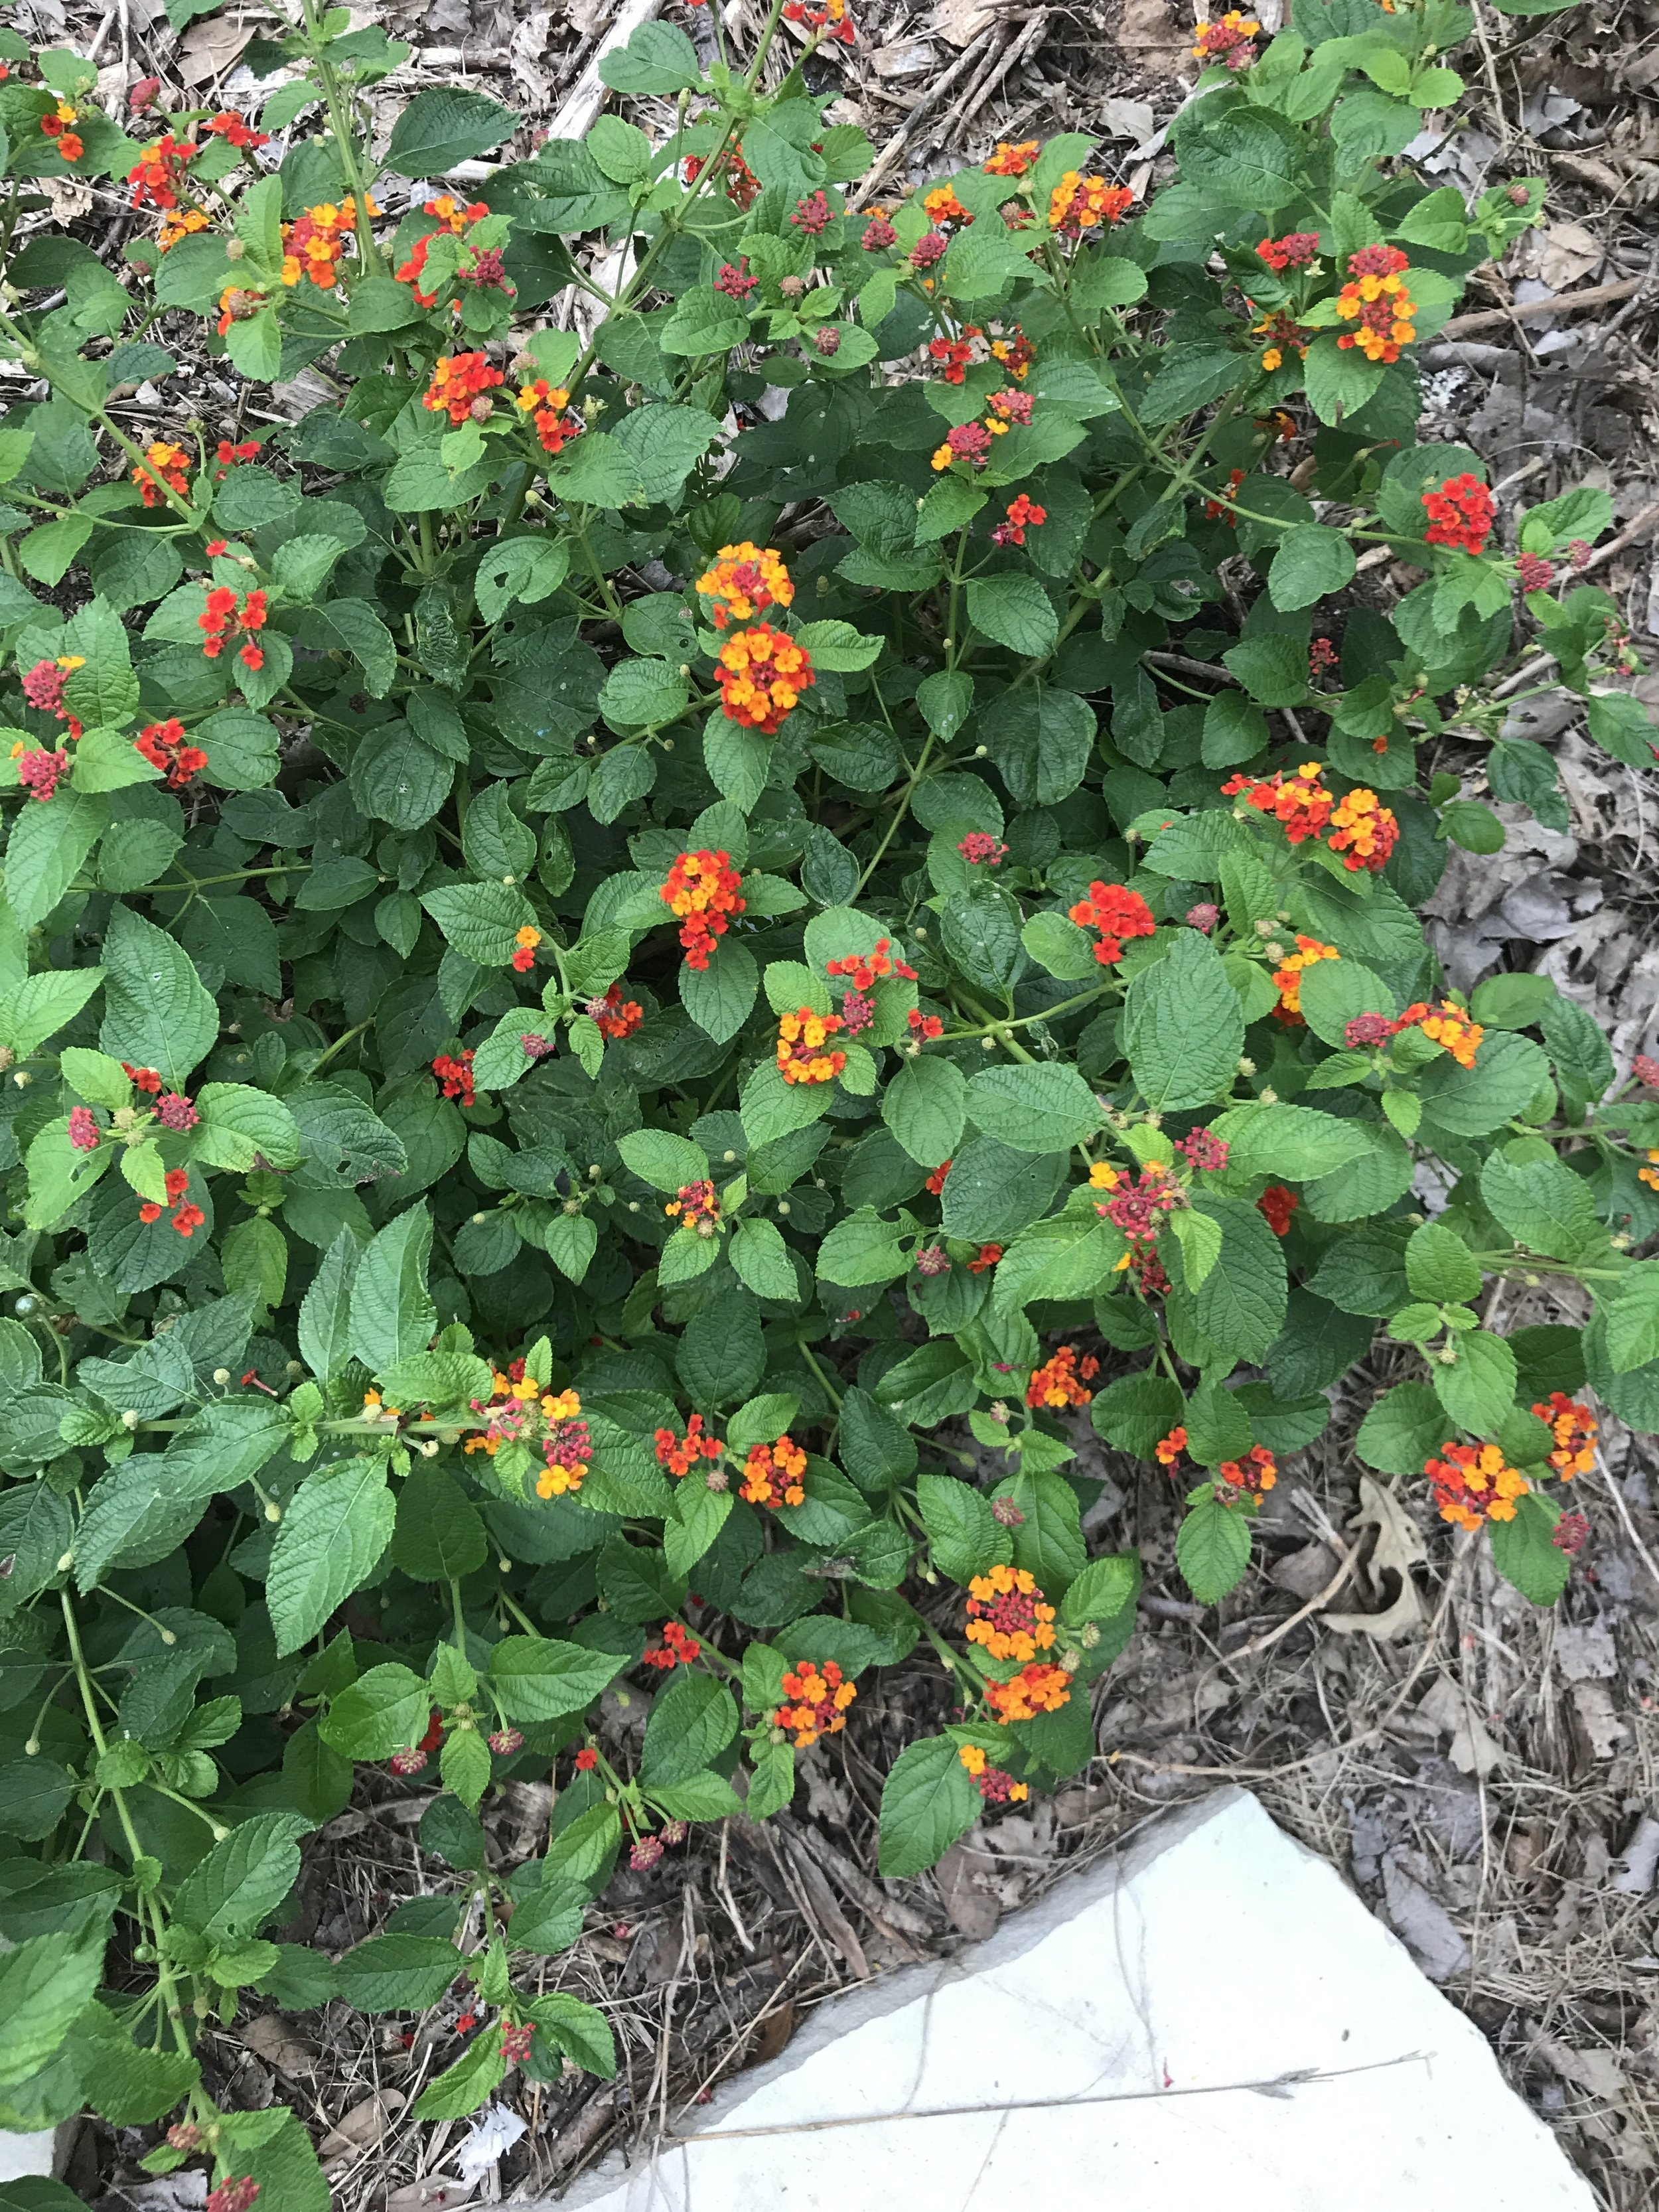 Lantana 'Dallas Red'. I had three planted but only one grew back after the short severe cold snap we had this winter. Lantana provides nectar as a food source for butterflies, and the shape of the flower makes it easy for them to sit while they drink.